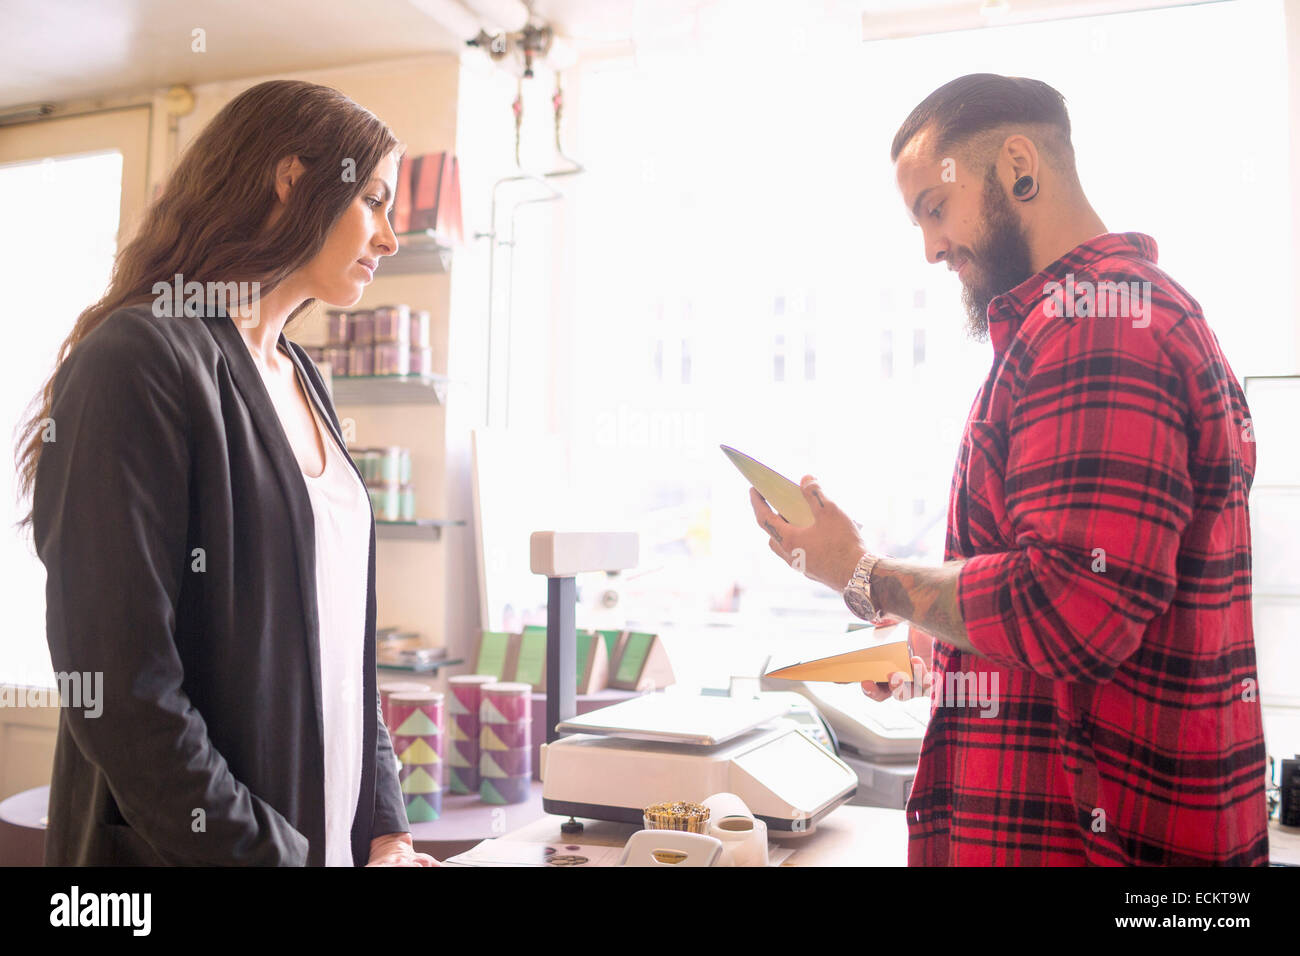 Owner and customer looking at product in candy shop - Stock Image